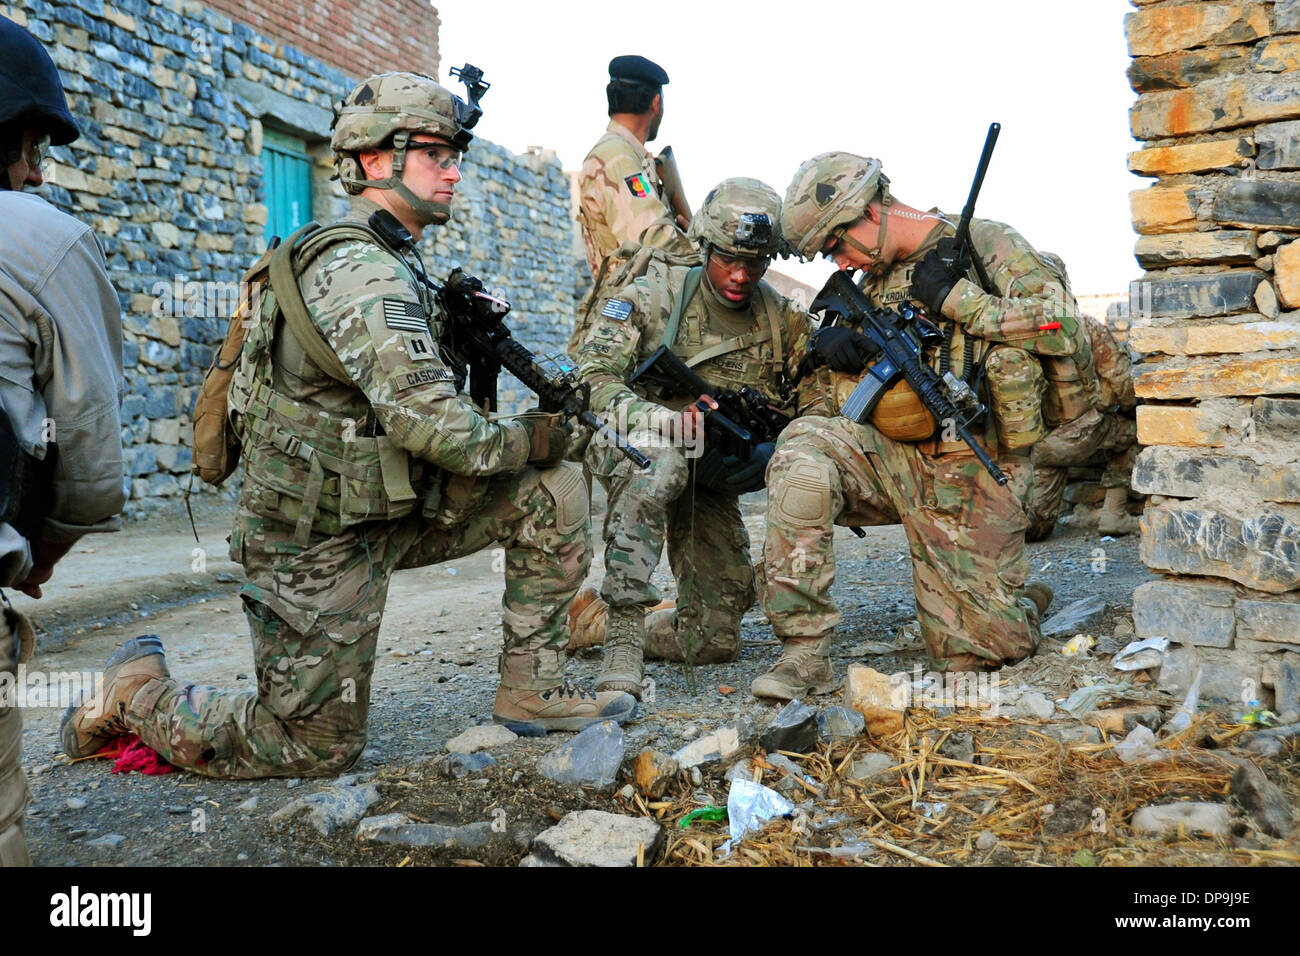 U.S. Army patrol in the village of Madi Khel in the Khowst Province of Afghanistan - Stock Image